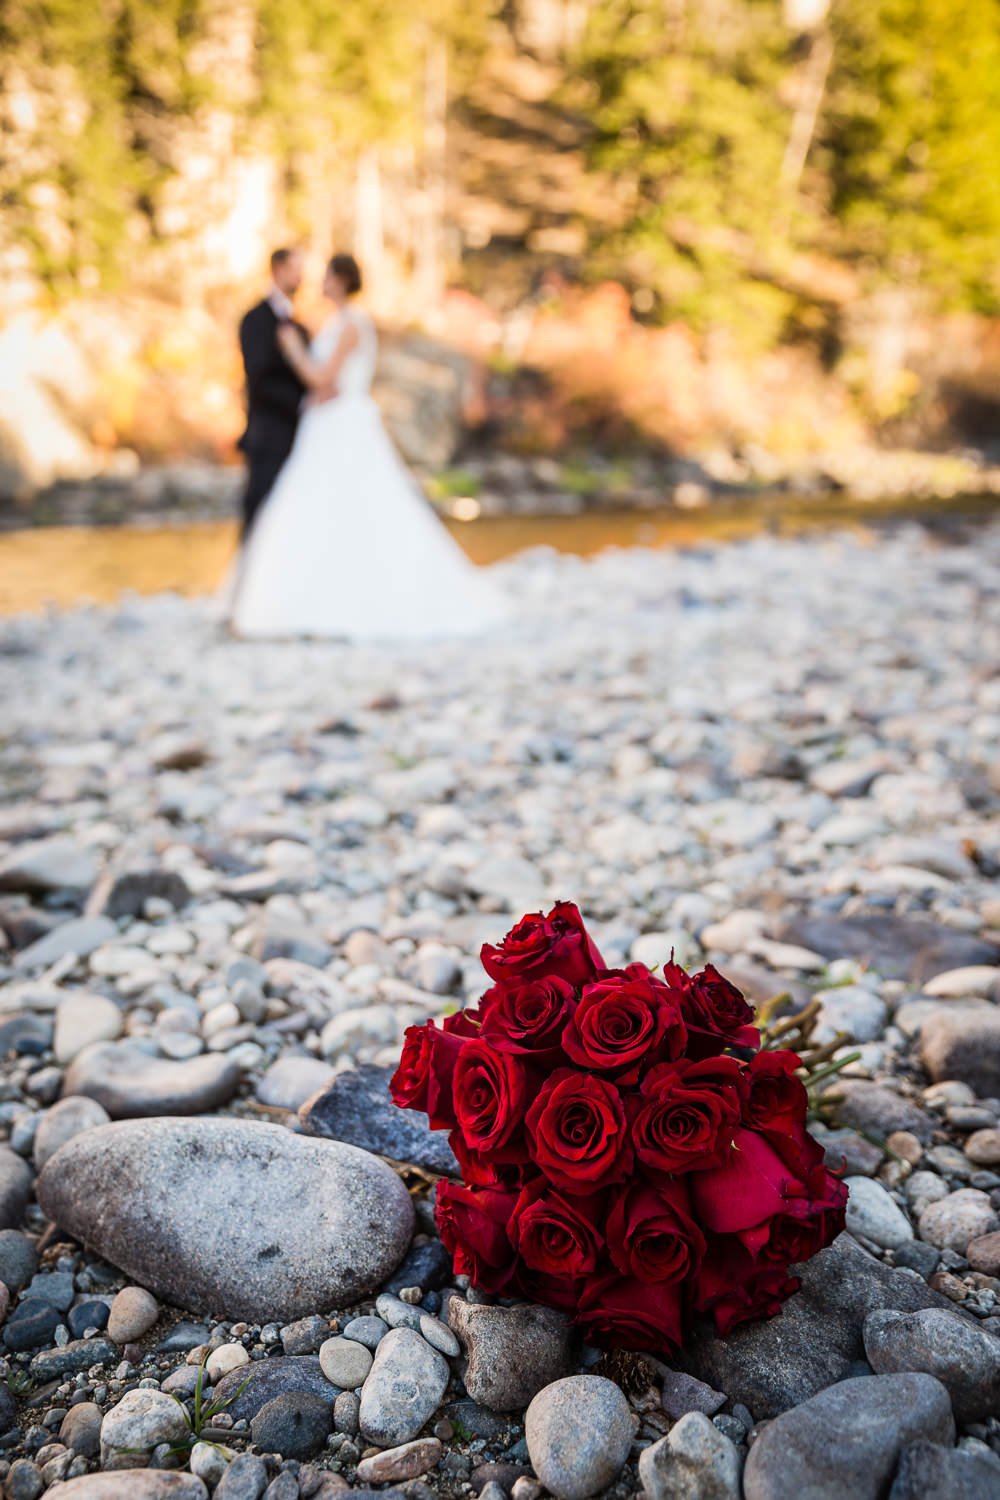 absaroka-beartooth-wilderness-montana-wedding-reception-bouquet.jpg